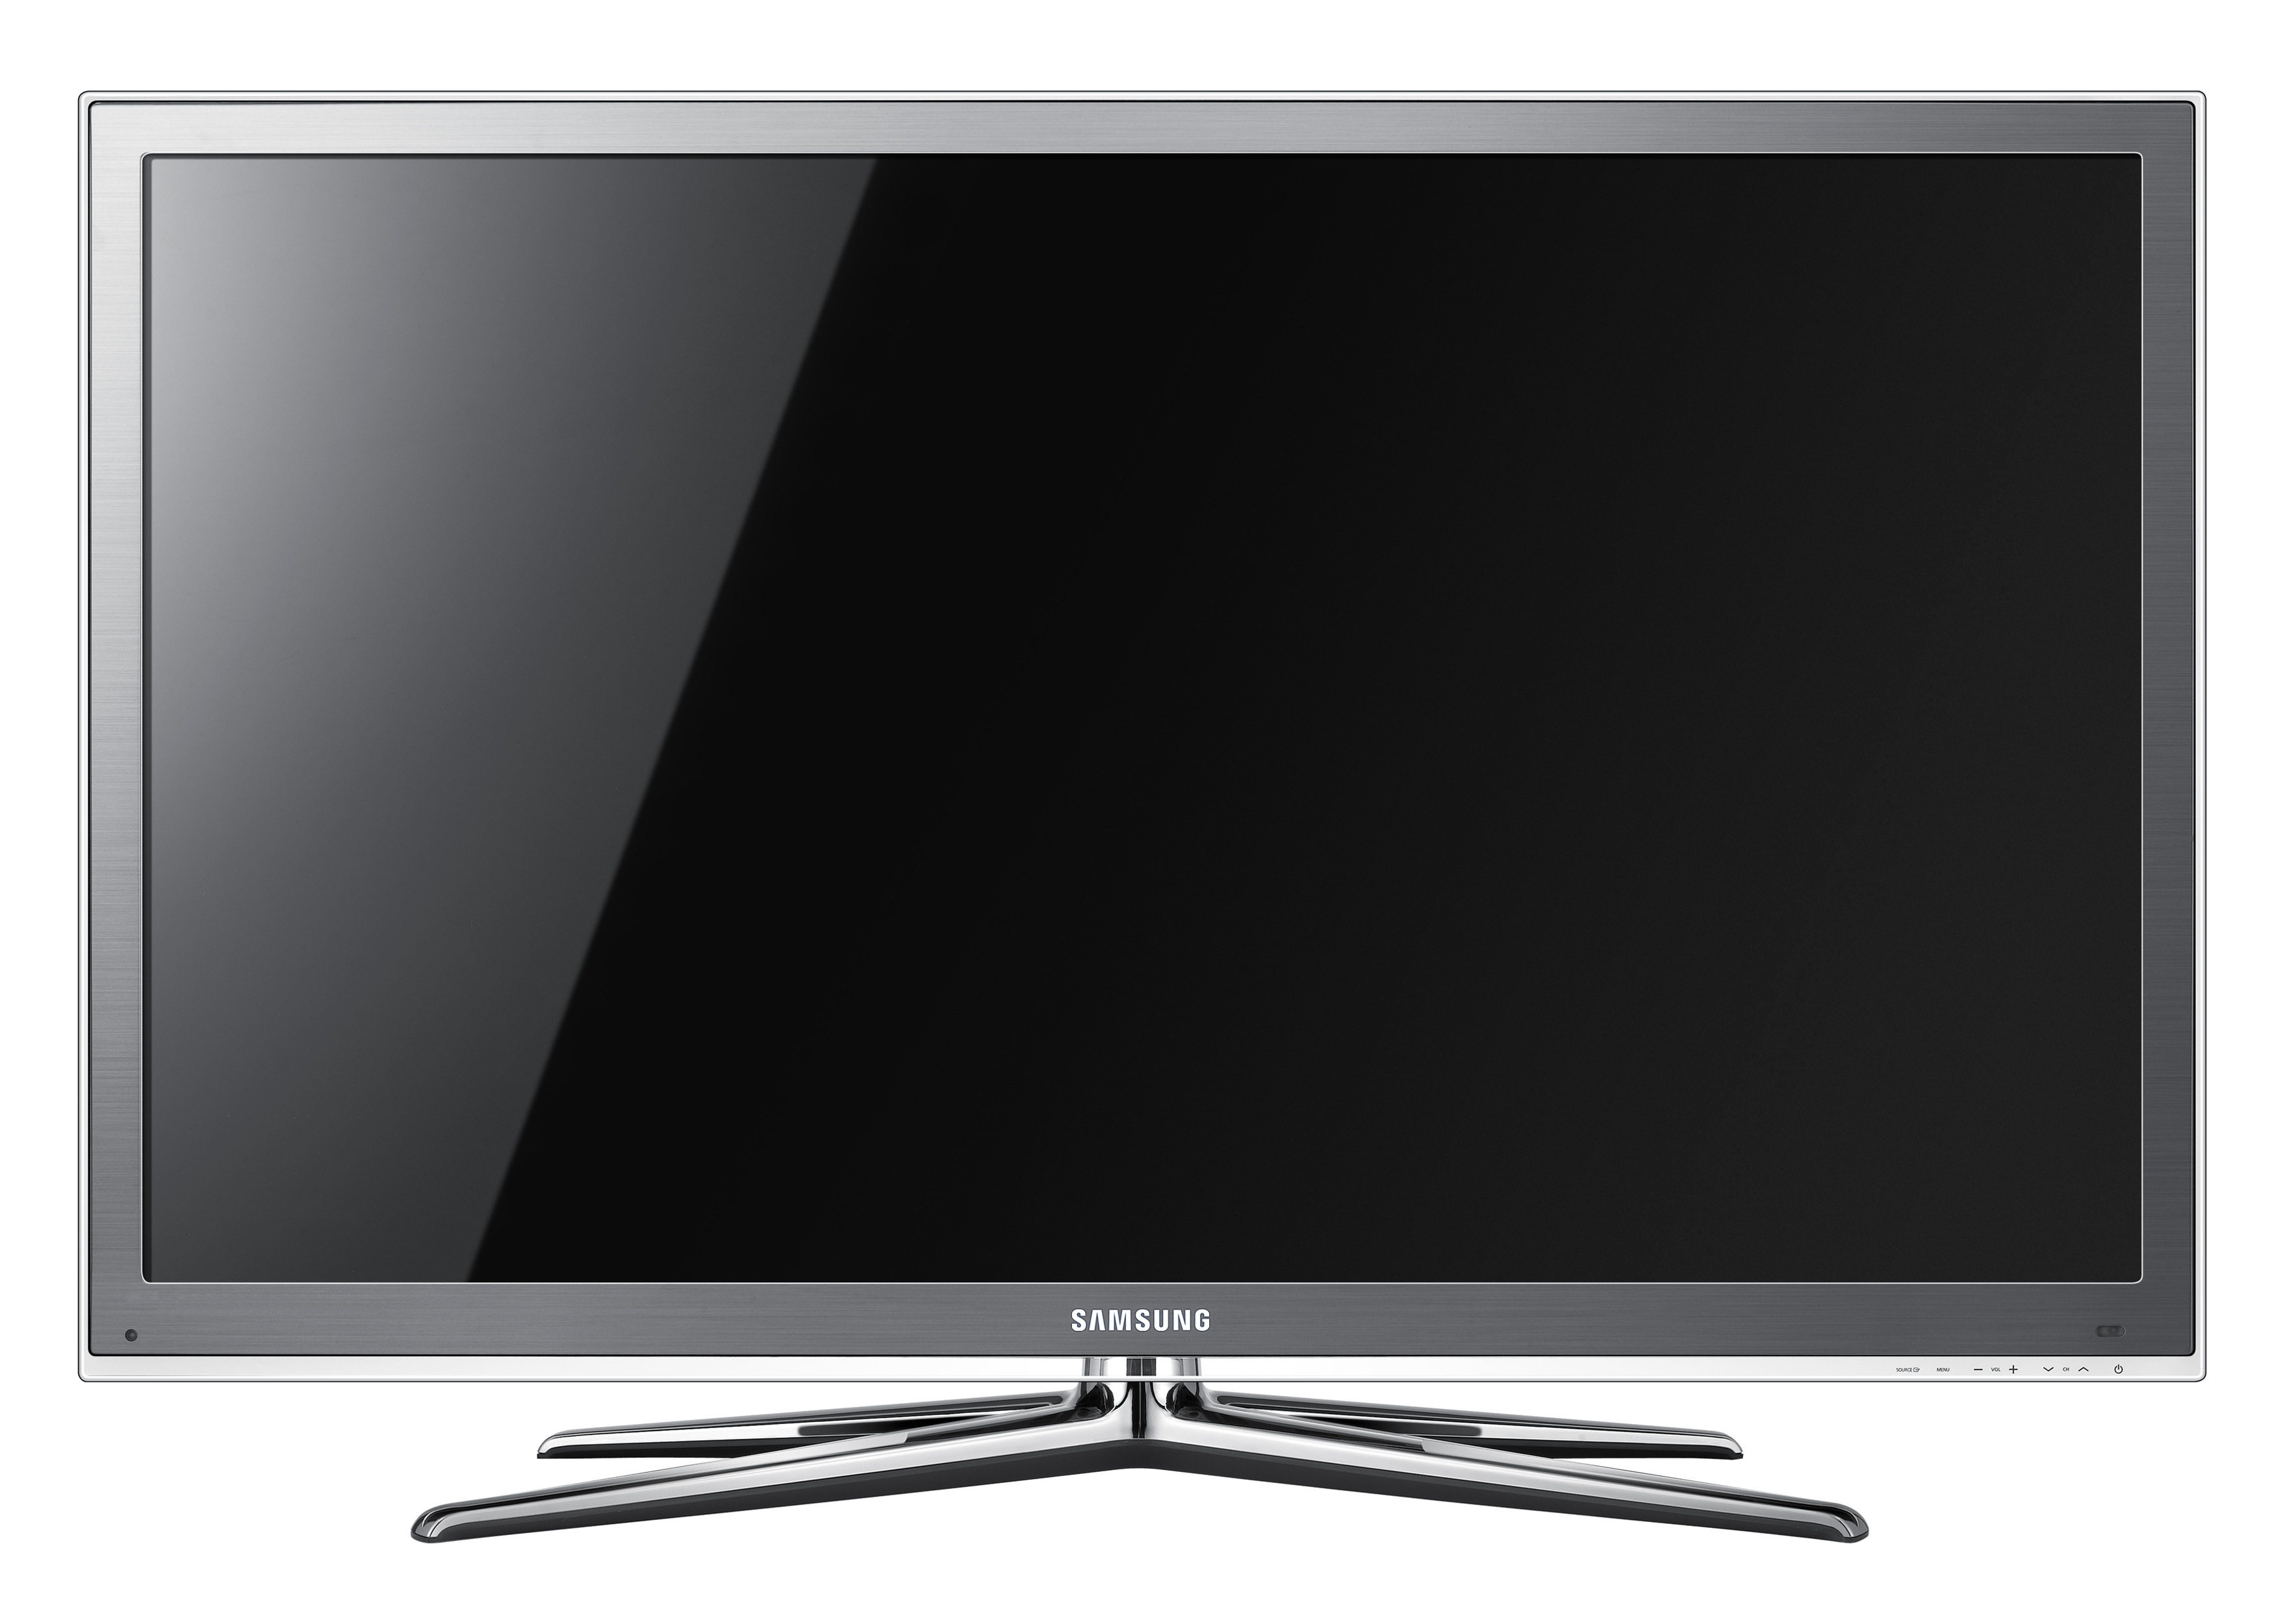 Samsung 3D TV Glasses SSG-2100AB/ZA,Without Retail Box but ... |Samsung 3d Tv Without Glasses